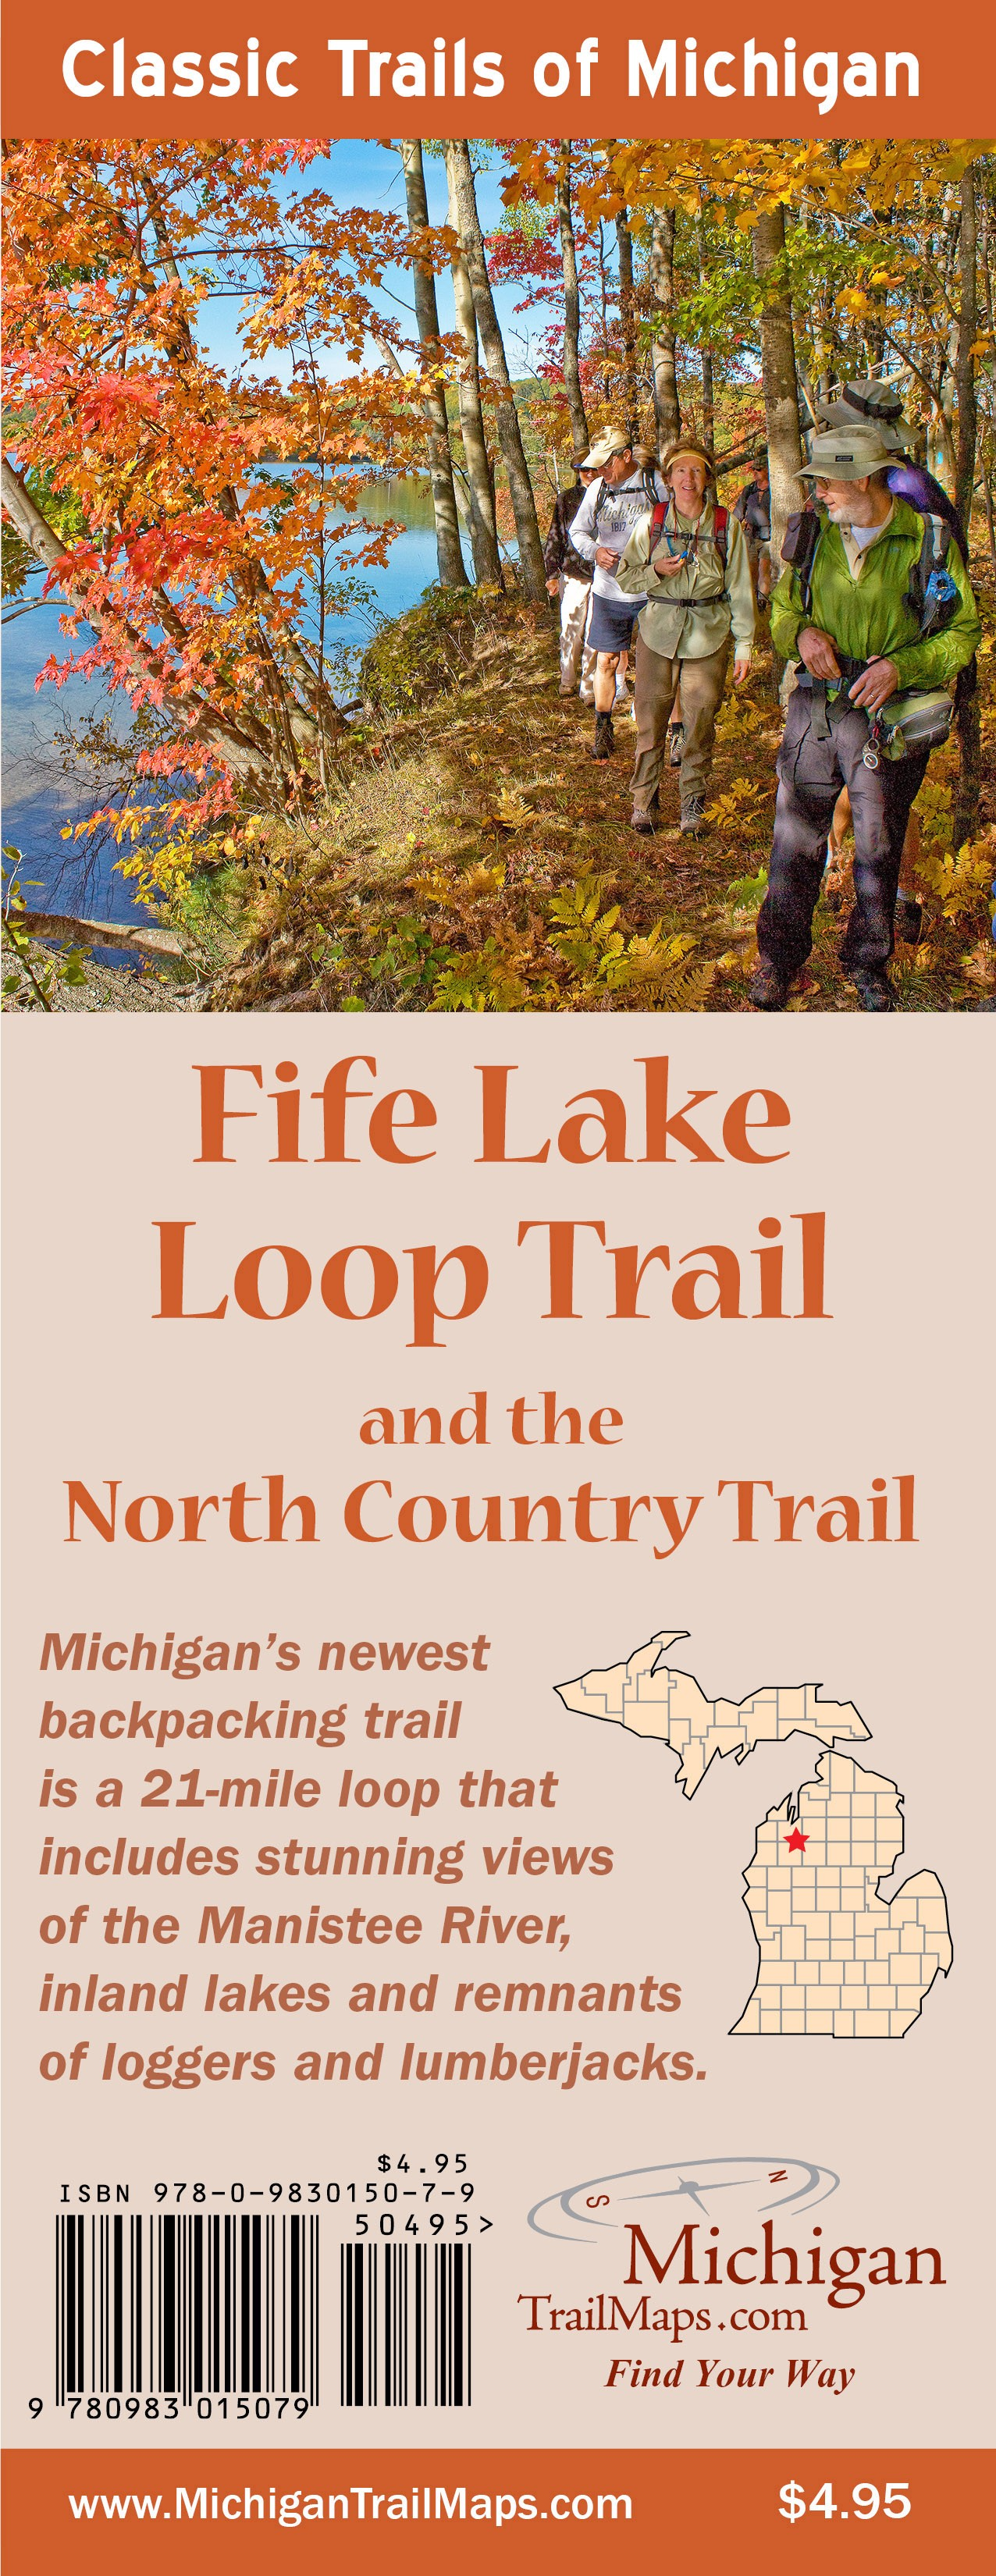 Fife Lake Loop Trail